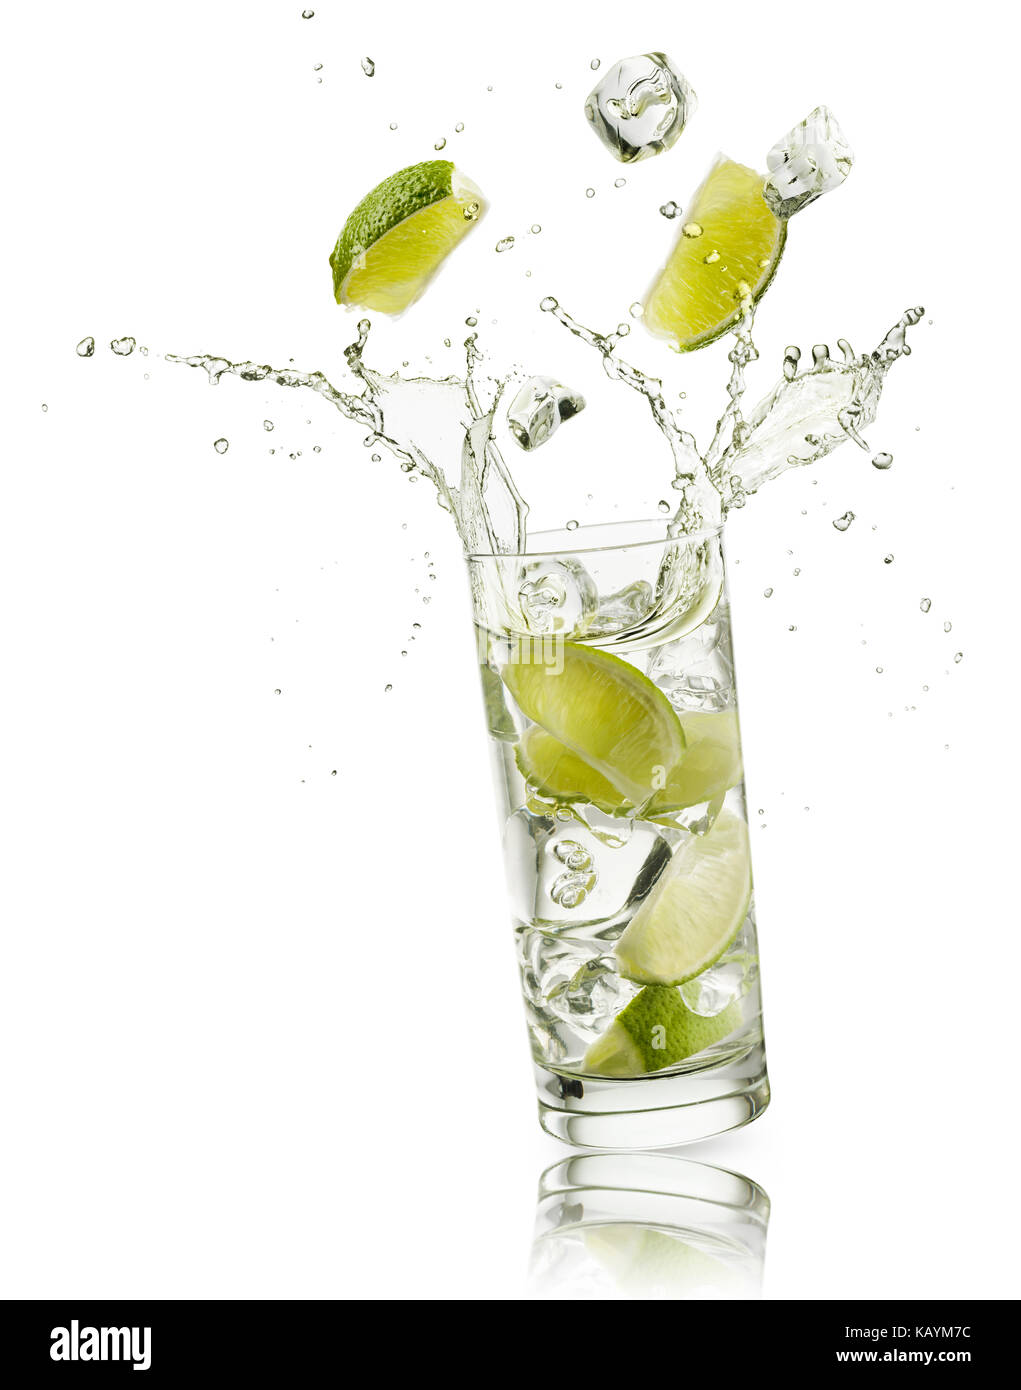 glass full of water with lime slices and ice cubes falling and splashing water, on white background - Stock Image